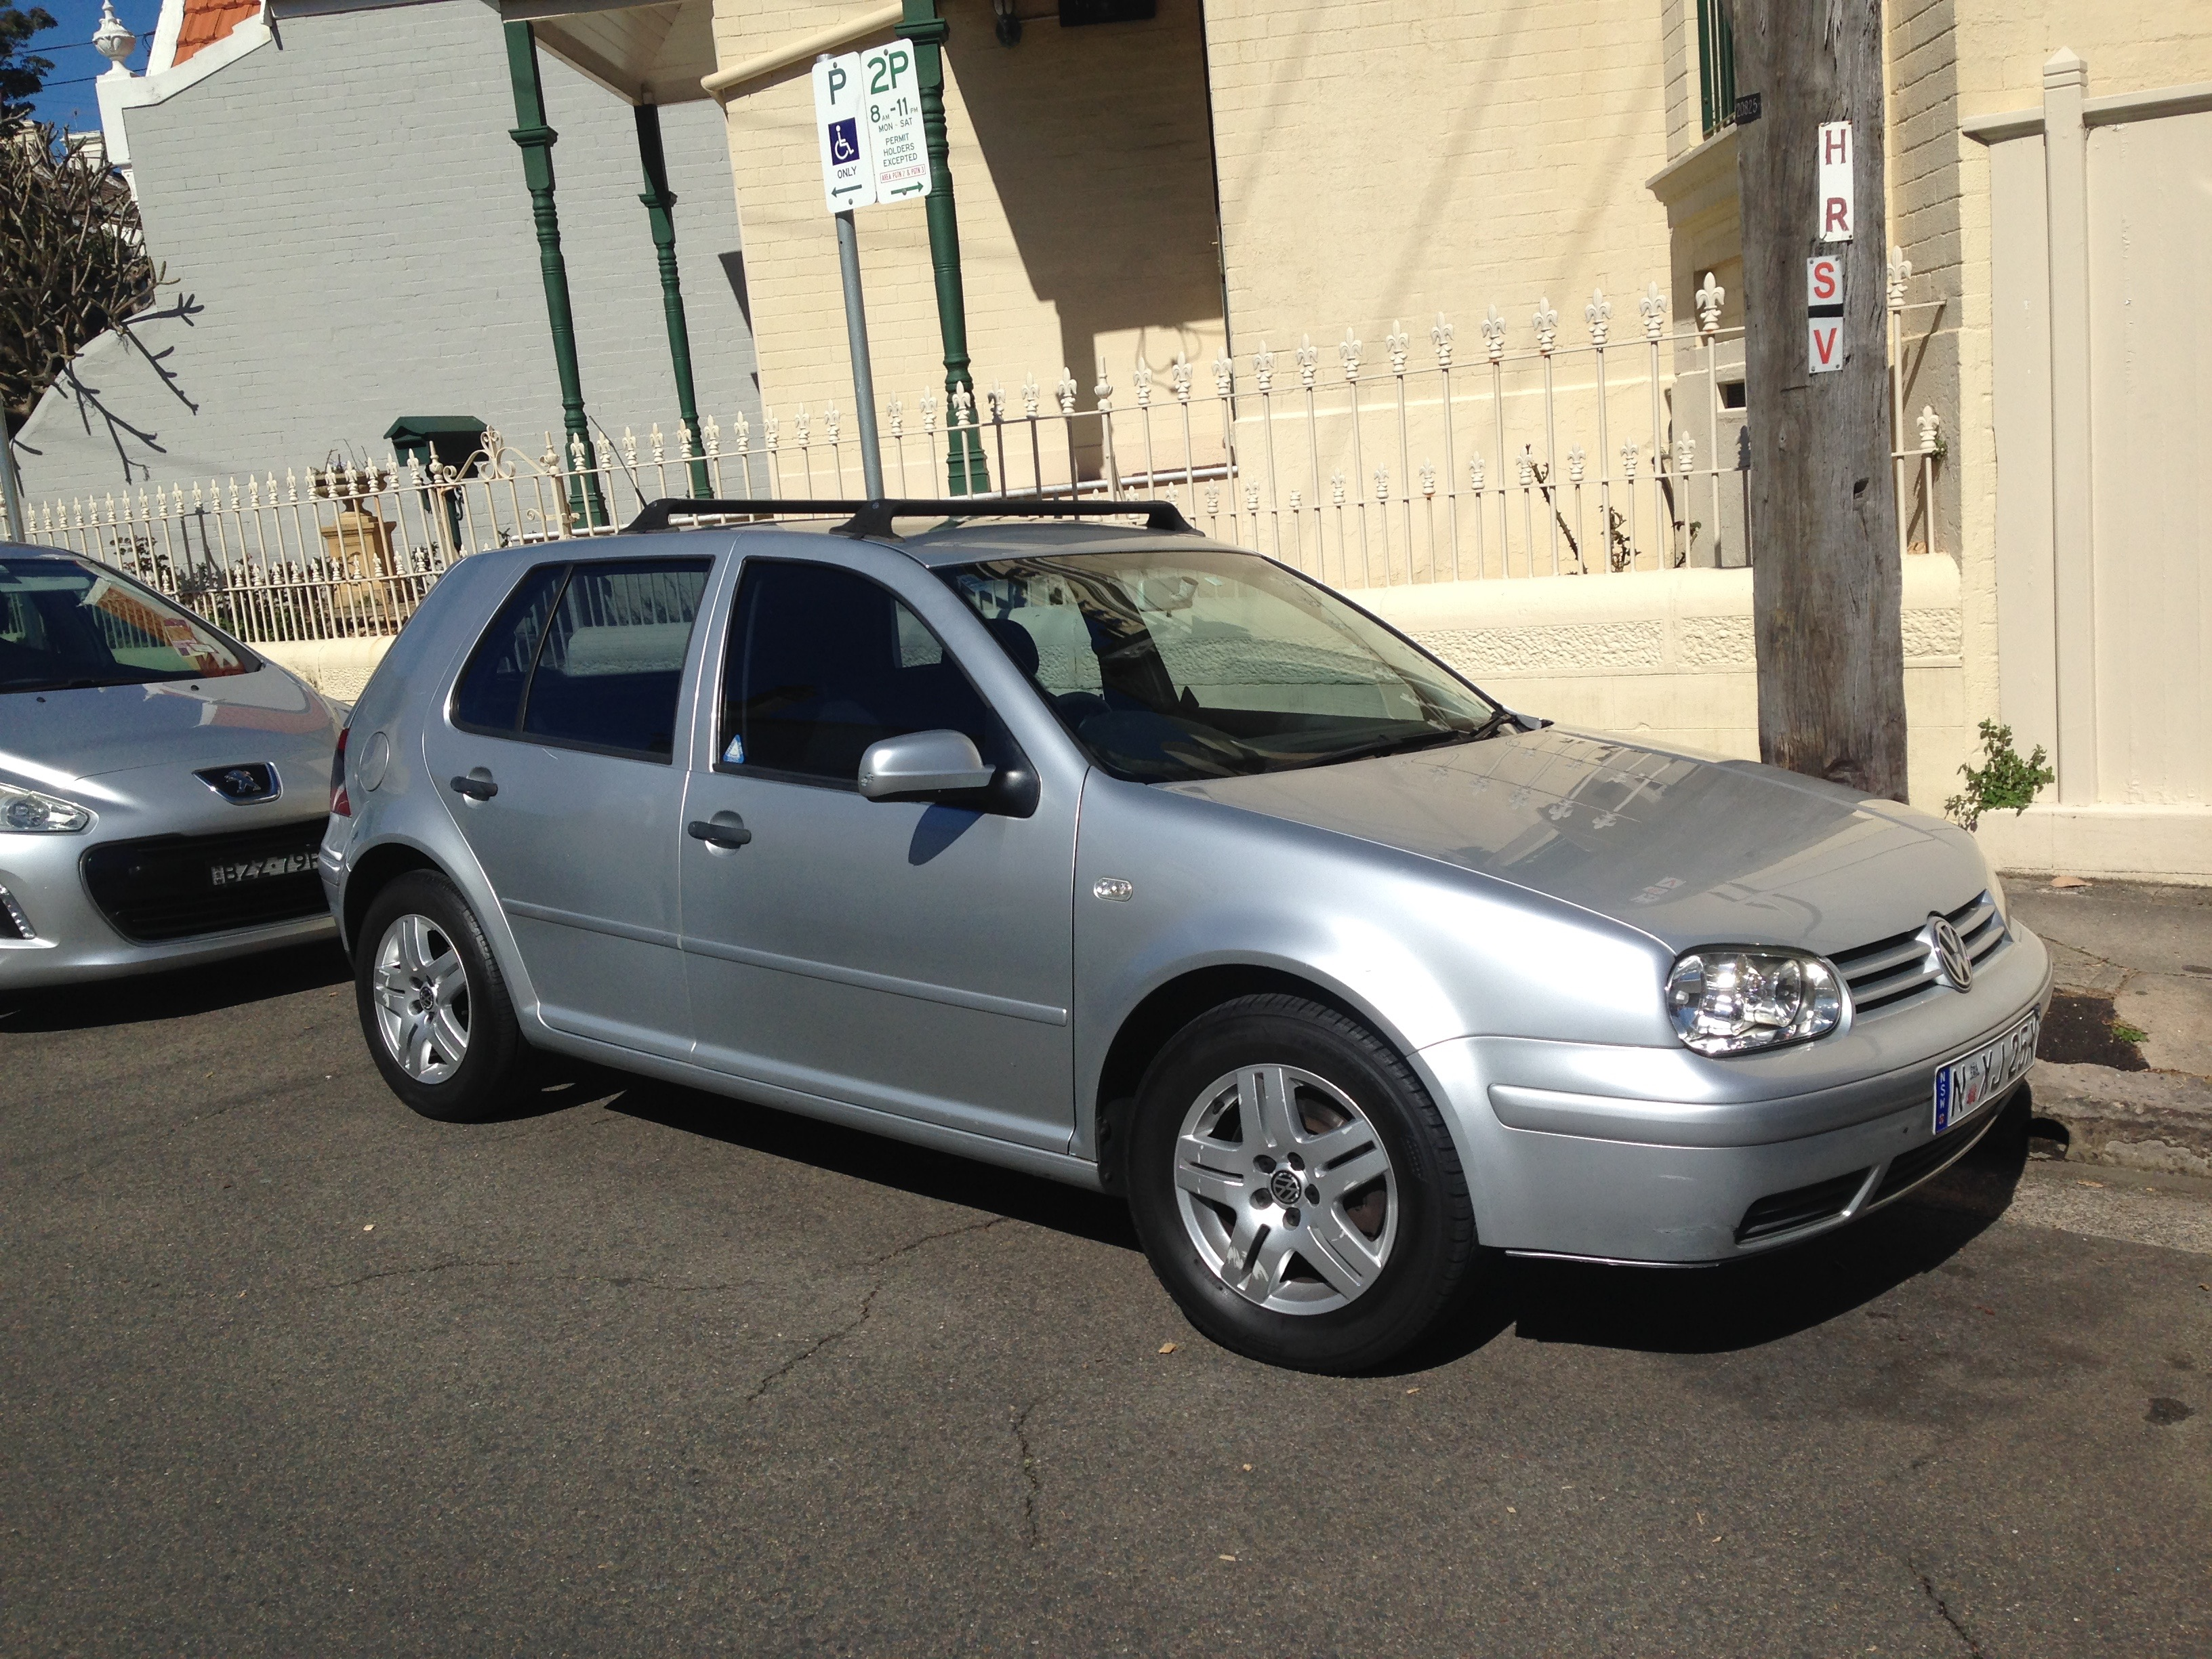 Picture of Dylan's 2003 Volkswagen Golf 2.0